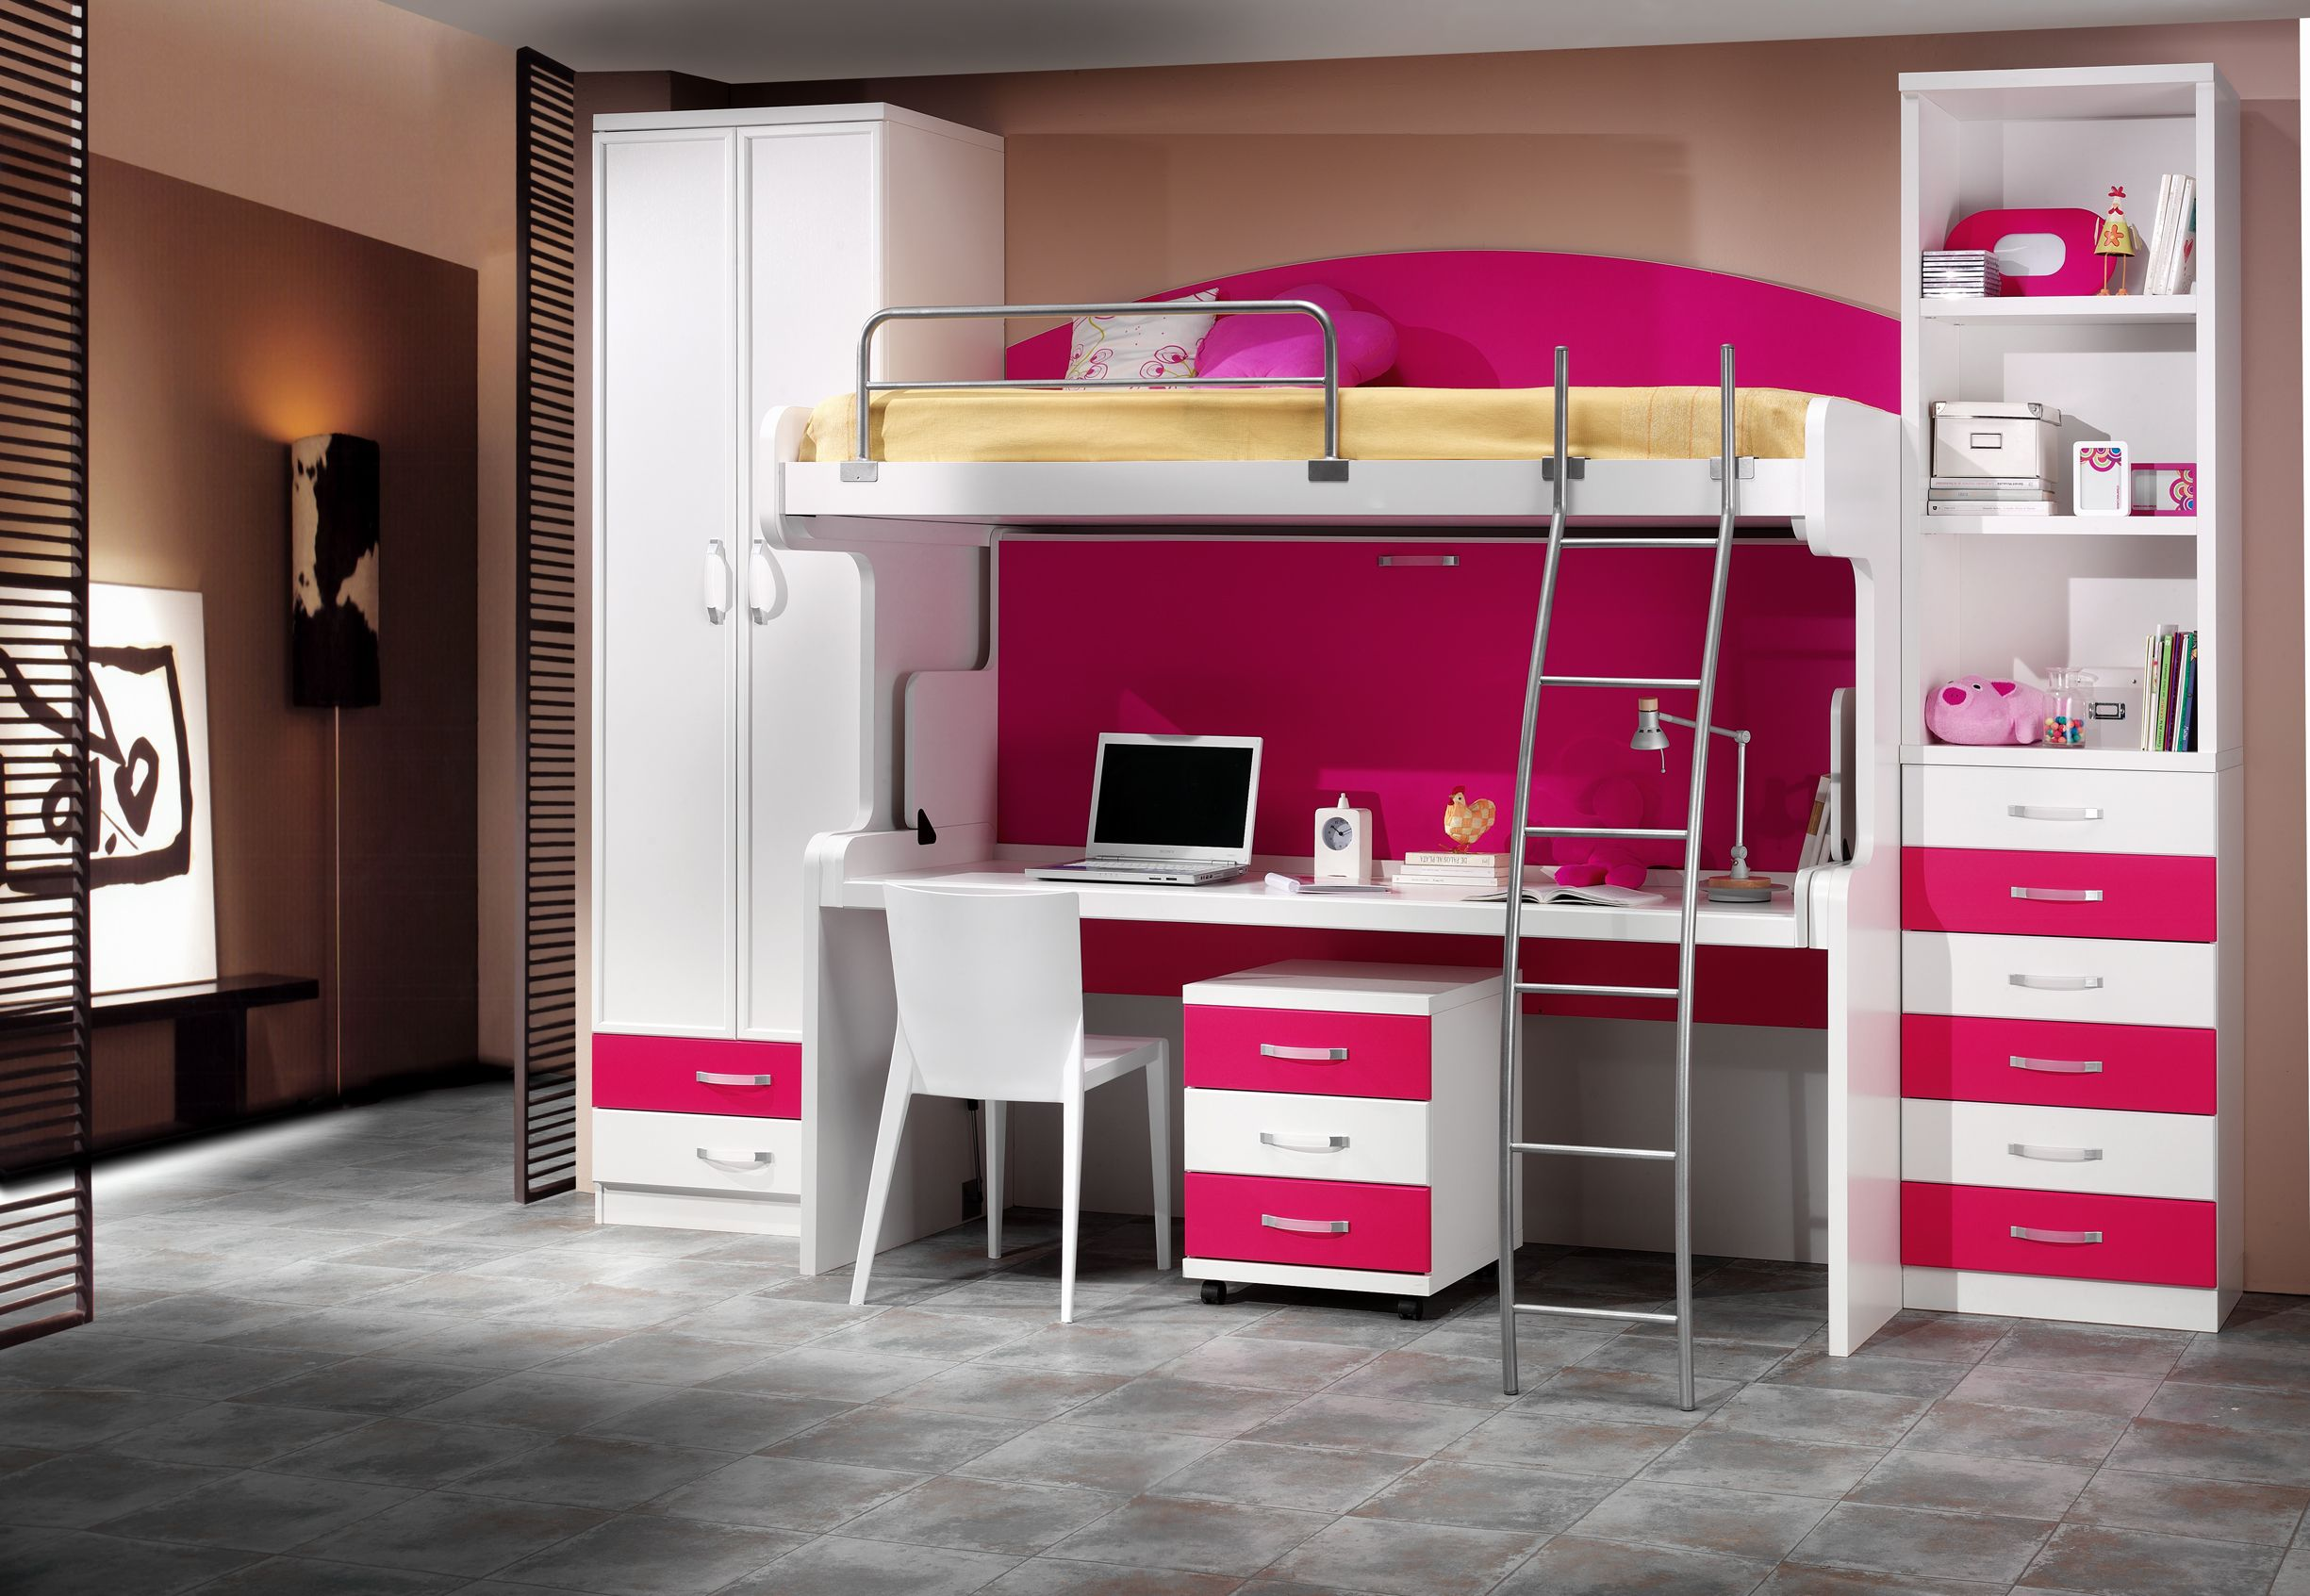 Double deck bedroom for kids girls - Hiddenbed S Double Decker Desk Bed